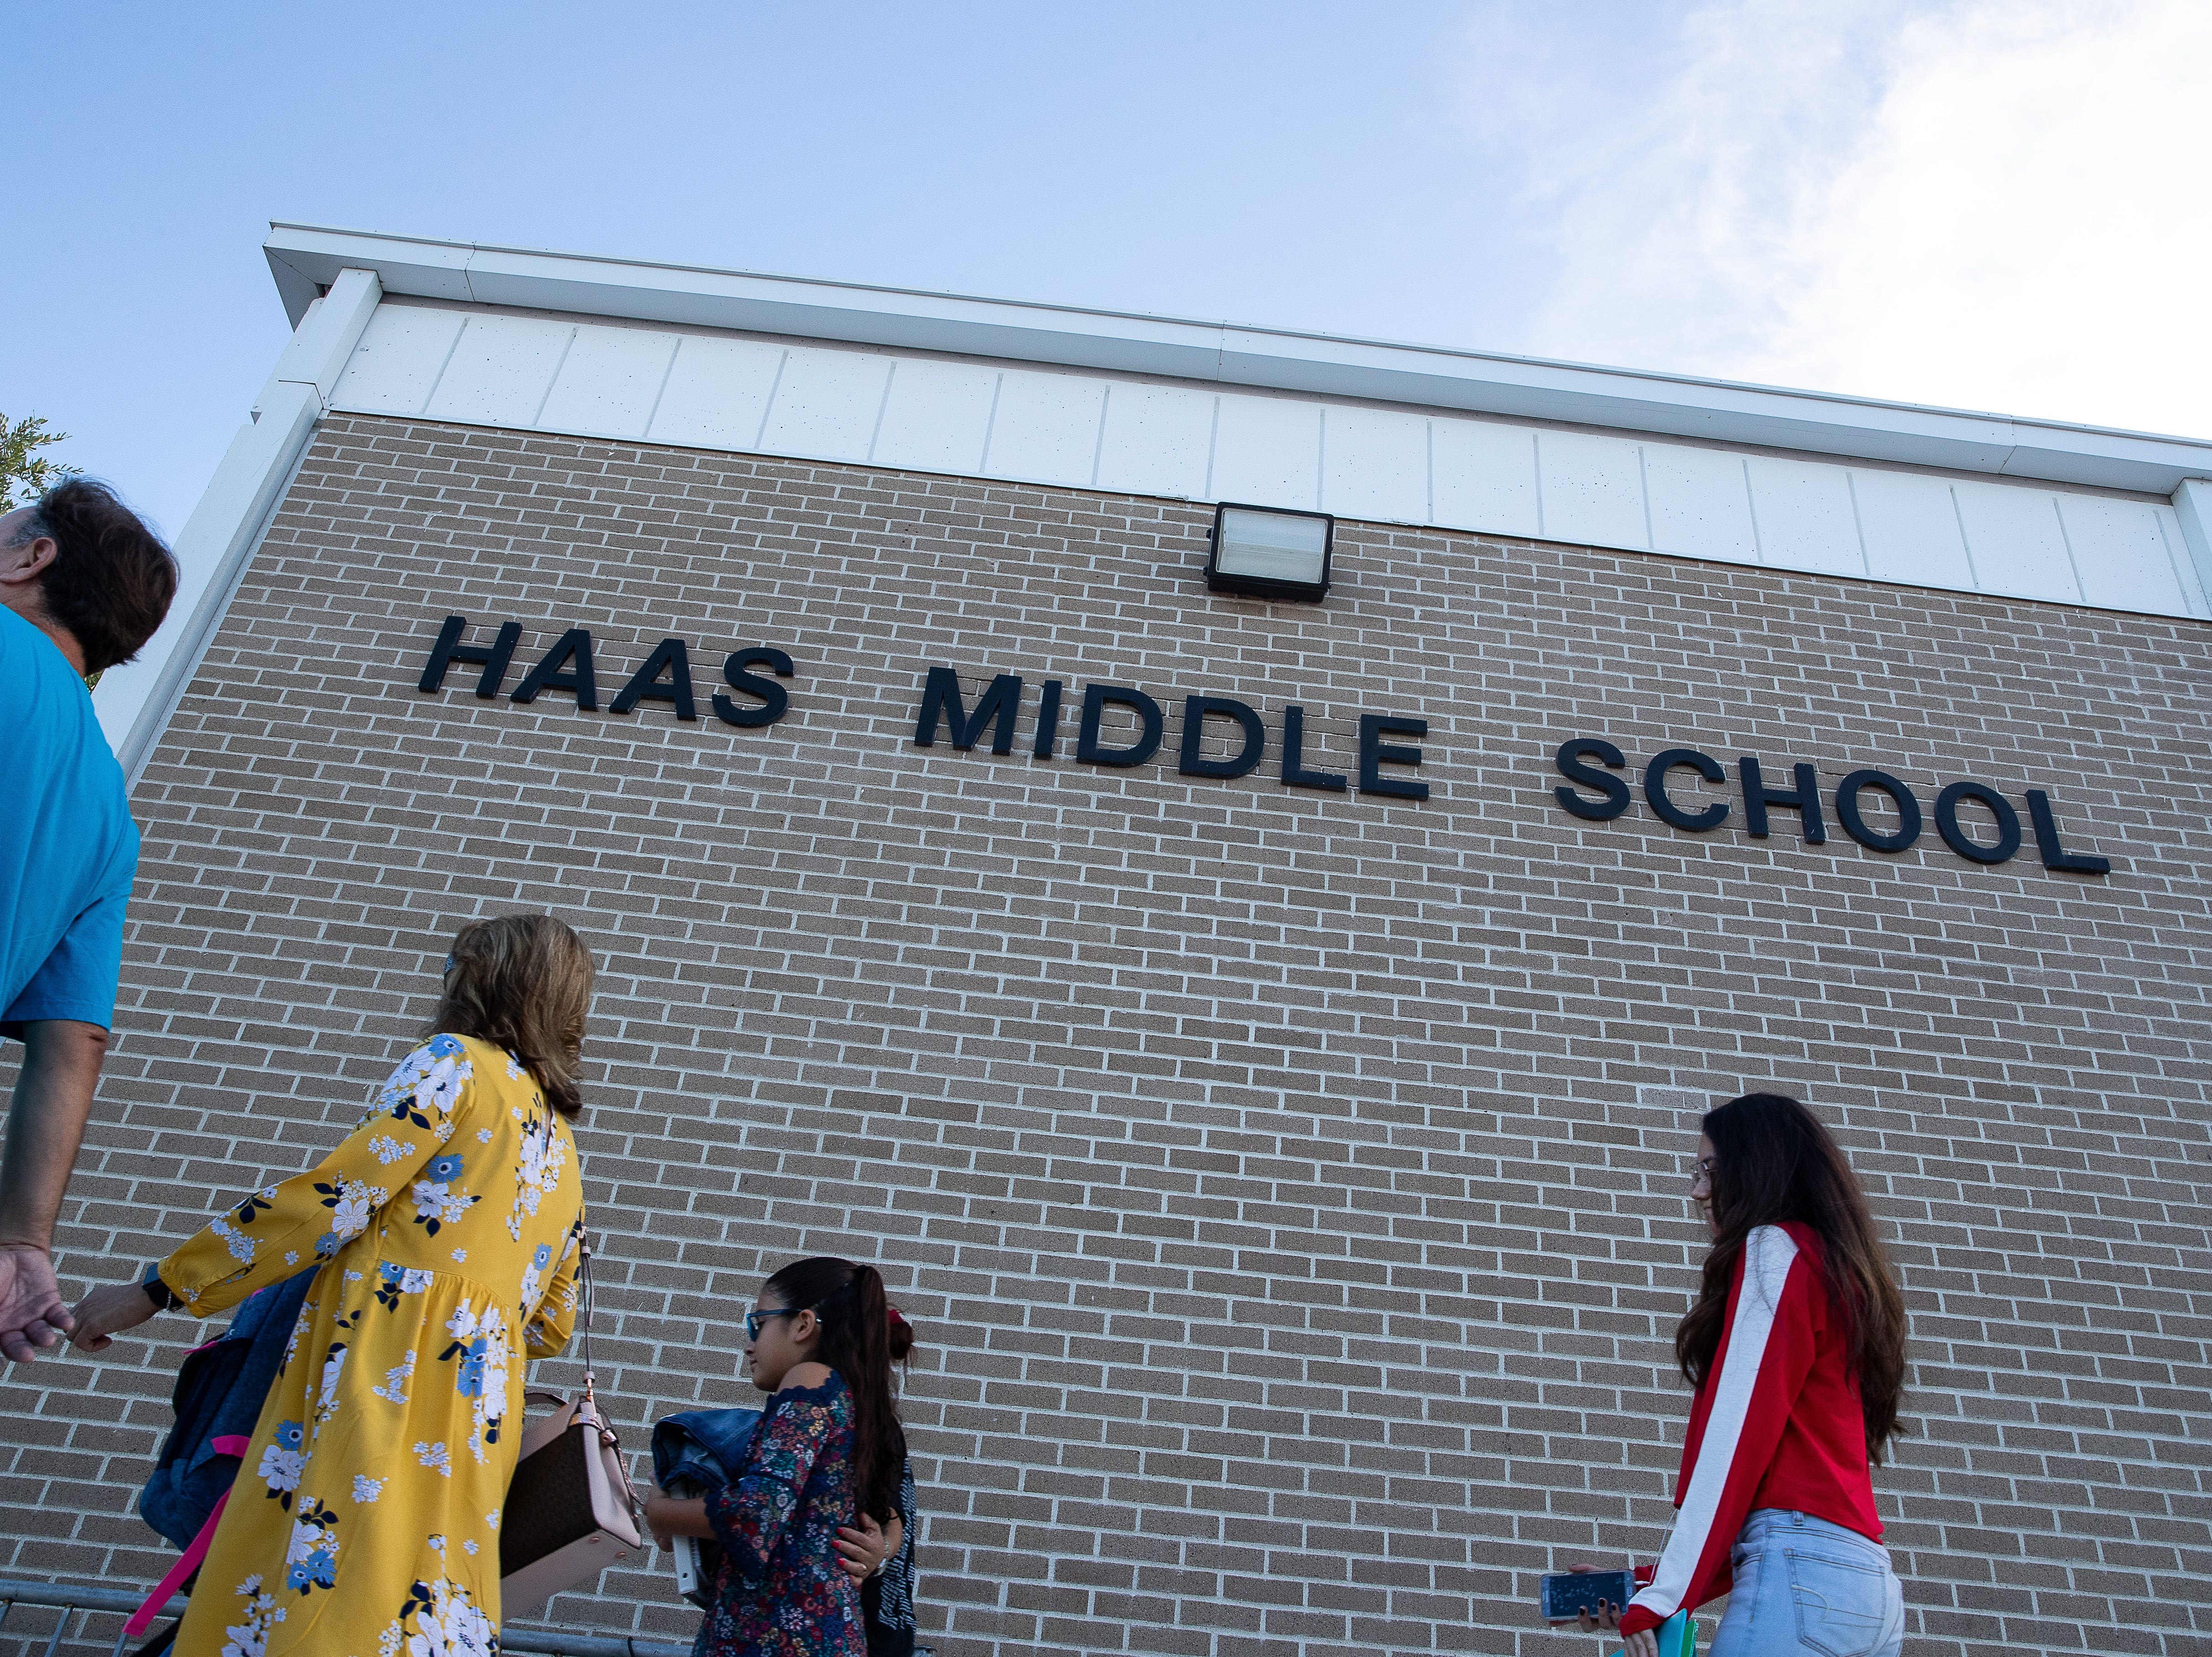 Students and parents arrive Haas Middle school on the first day of school, Monday, Aug. 27, 2018.